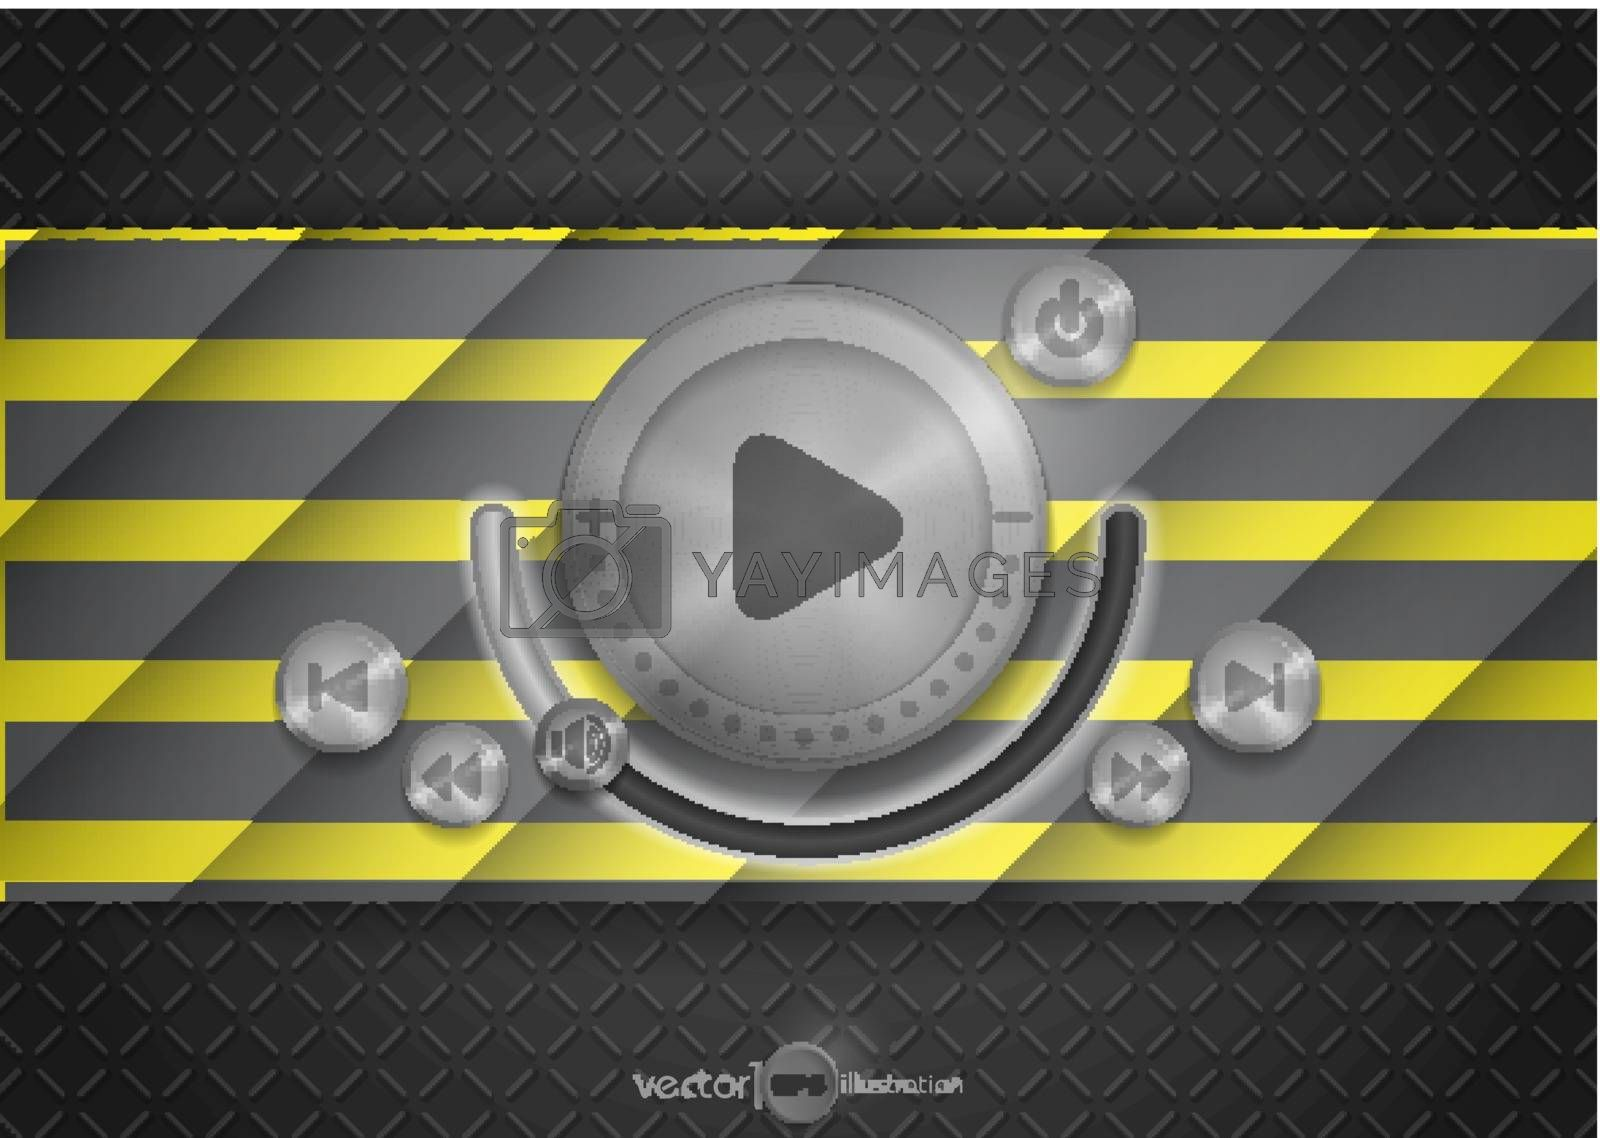 Abstract Technology App Icon With Music Button. Vector Illustration. Eps 10.